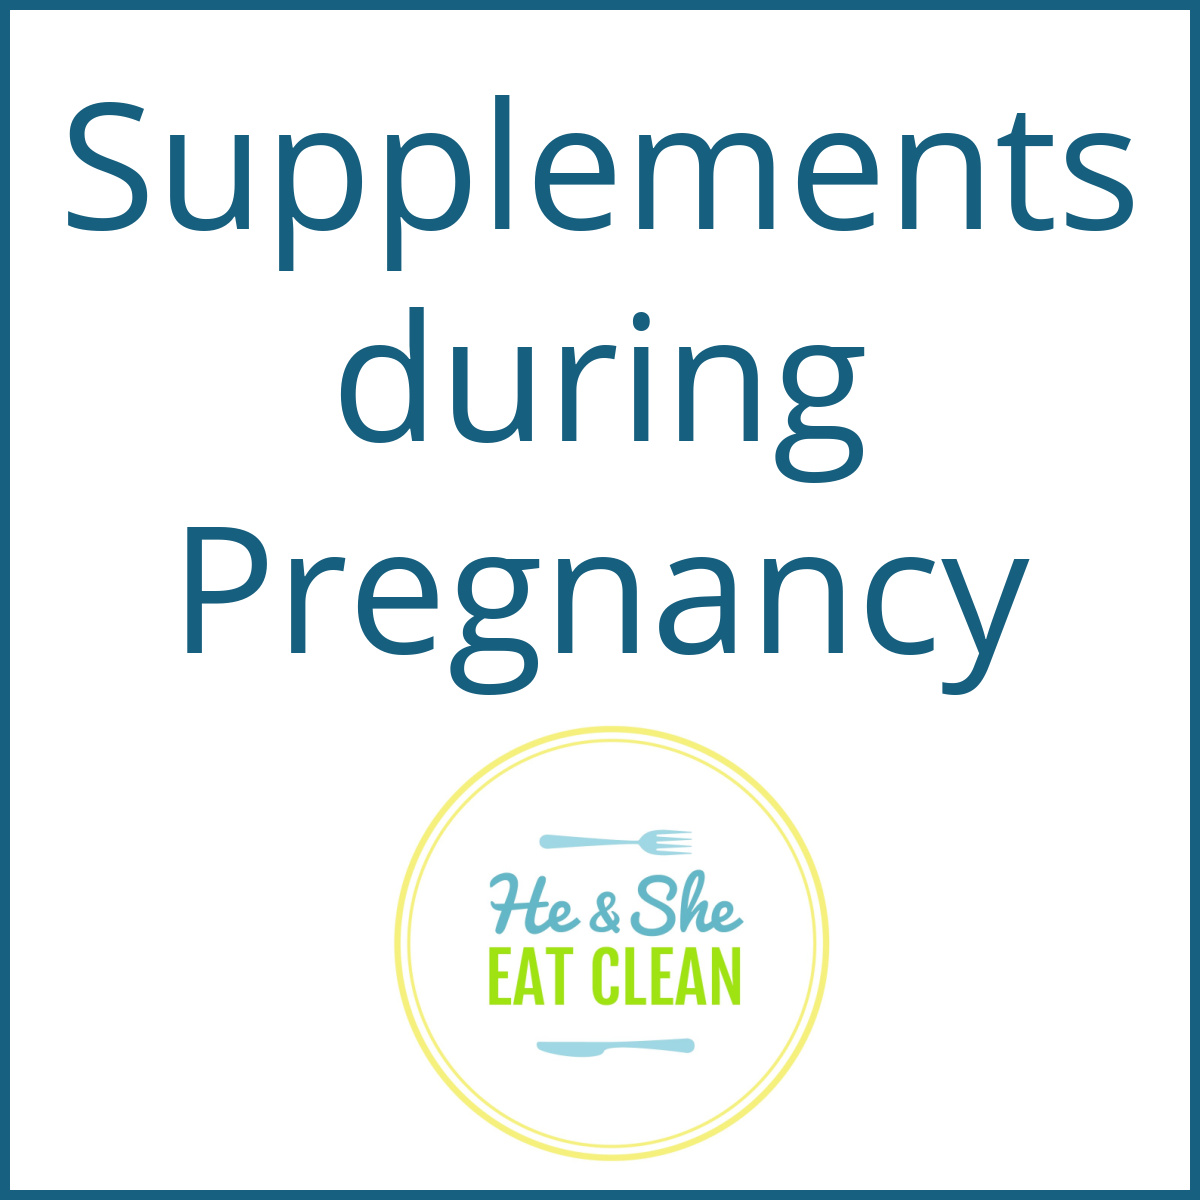 square image text reads supplements during pregnancy